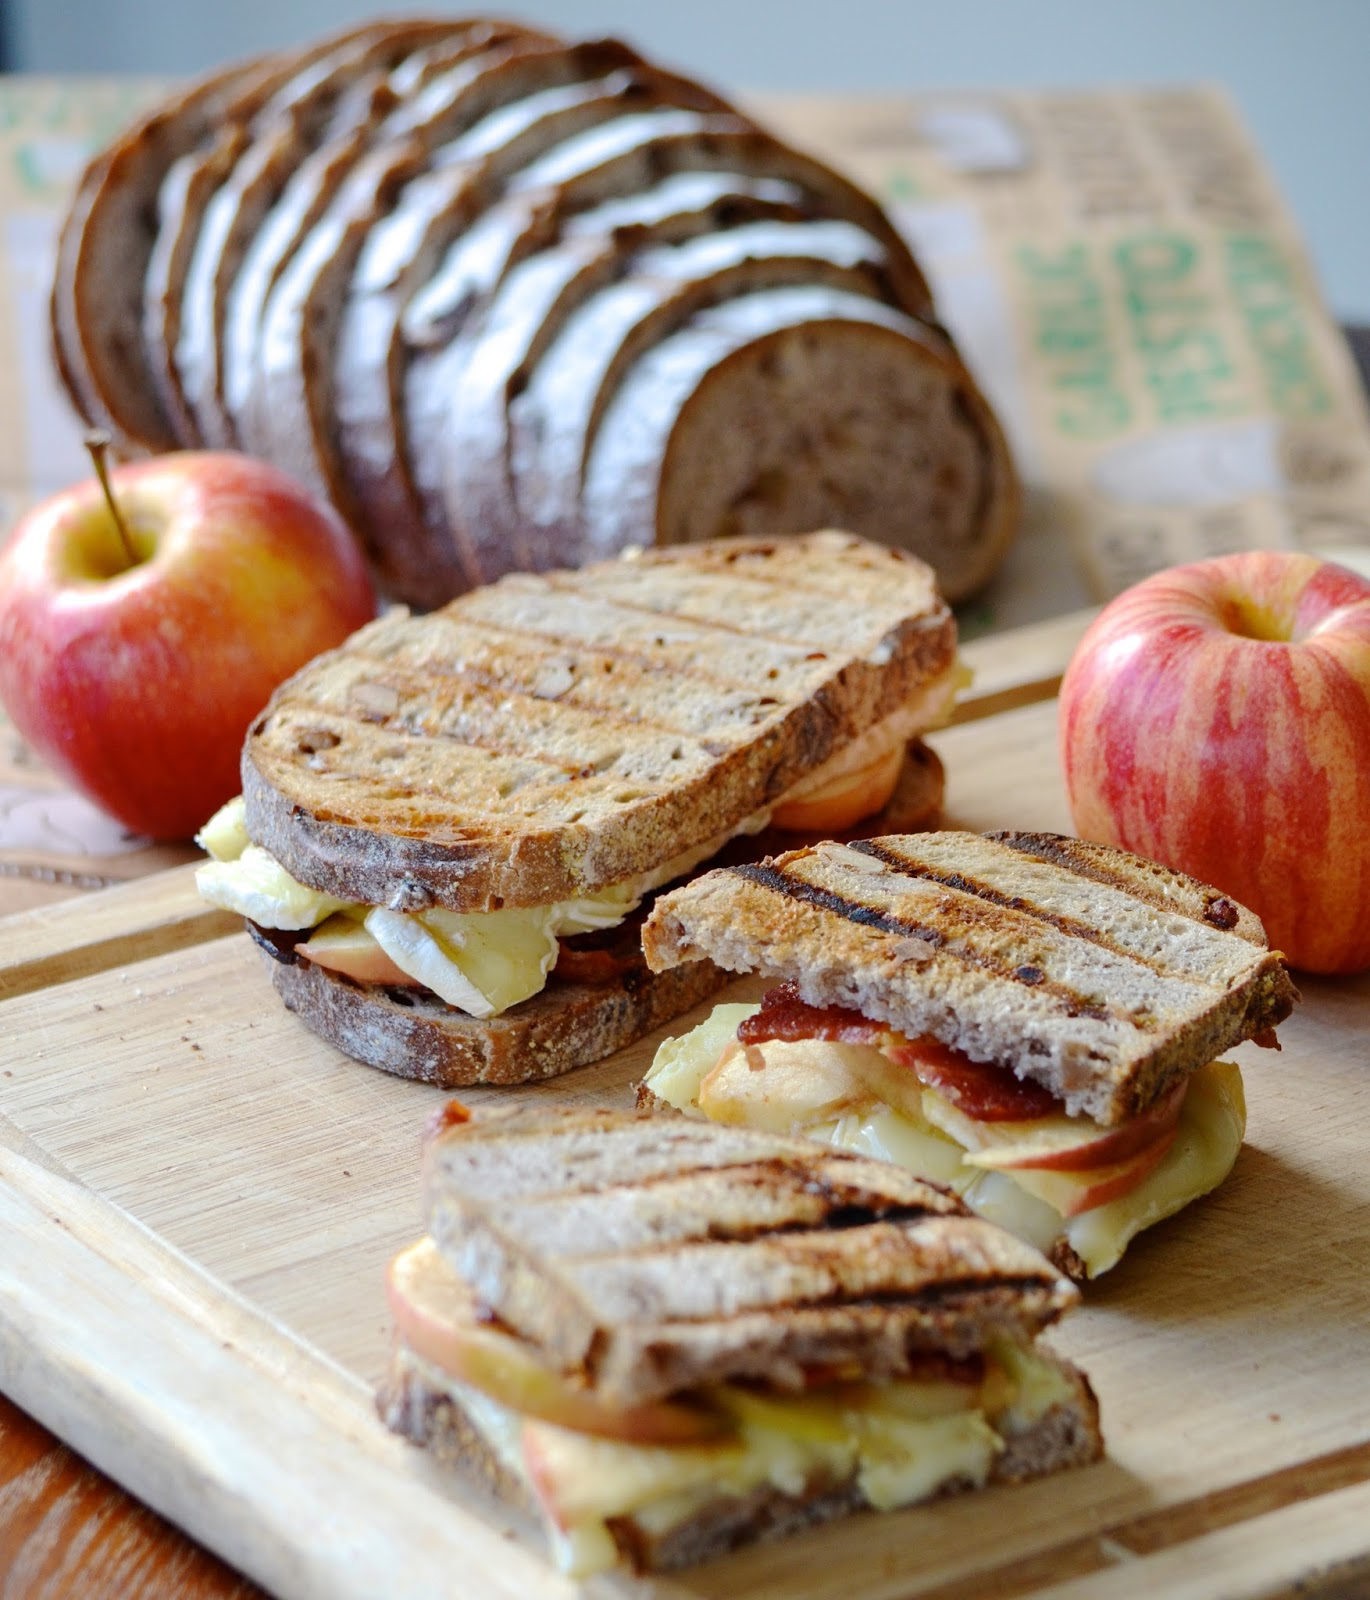 Apple Bacon Brie Panini